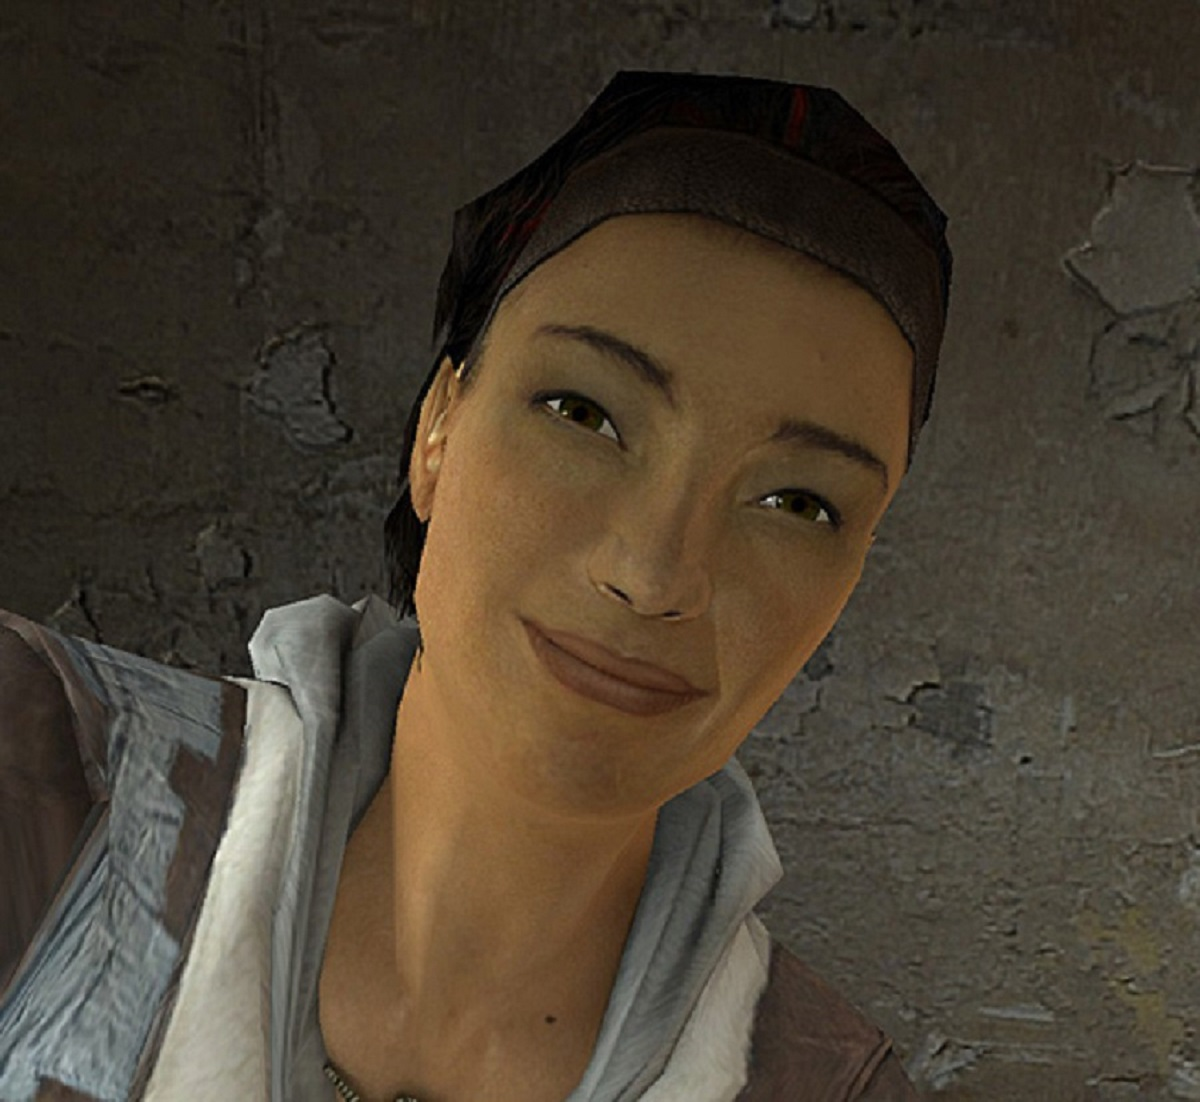 Young Alyx Vance is a sight for sore eyes to fans of the Half-Life series.